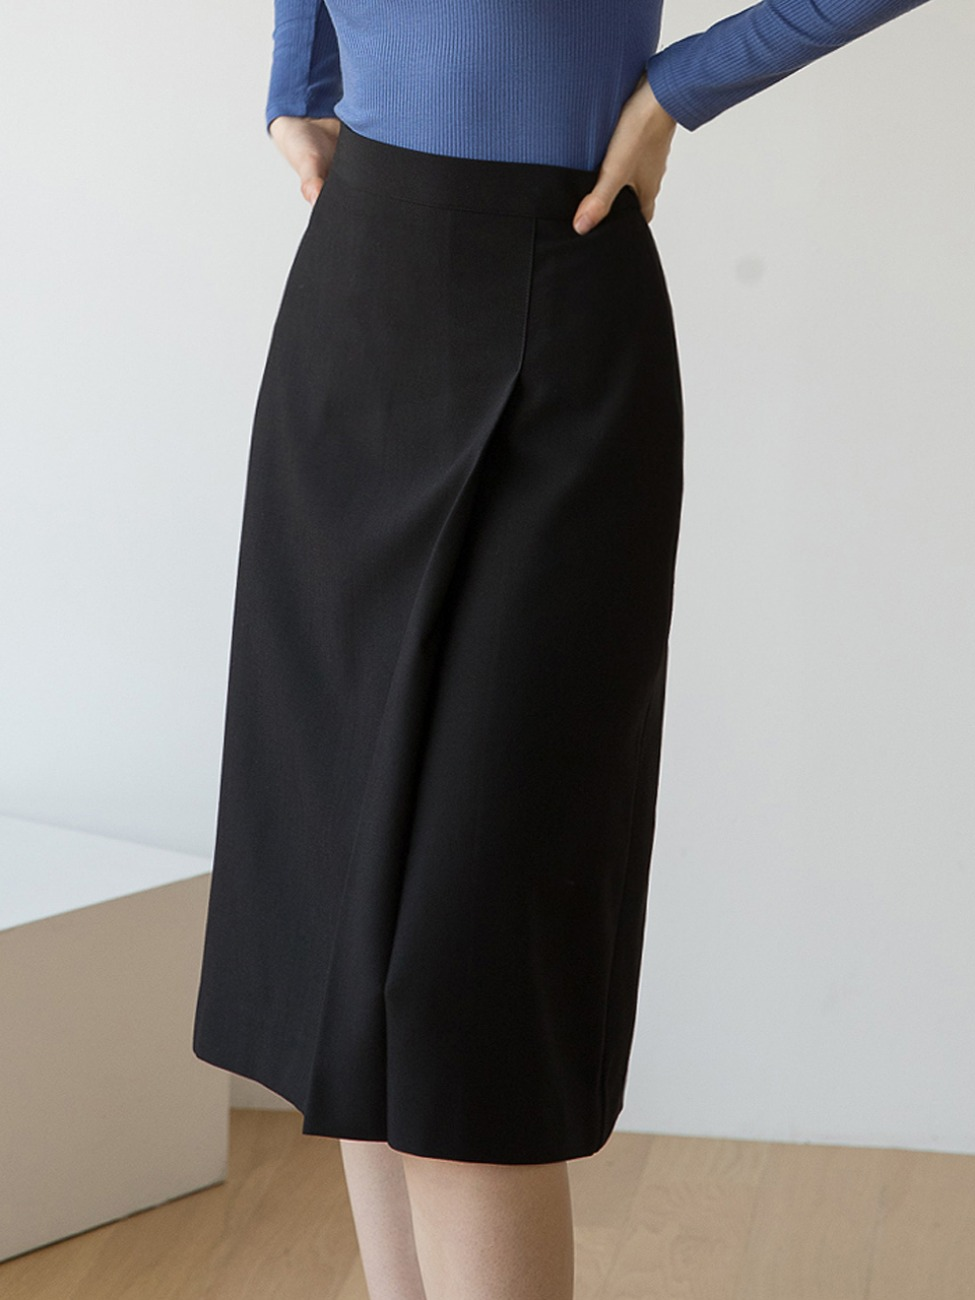 Tuck Banding Skirt Black